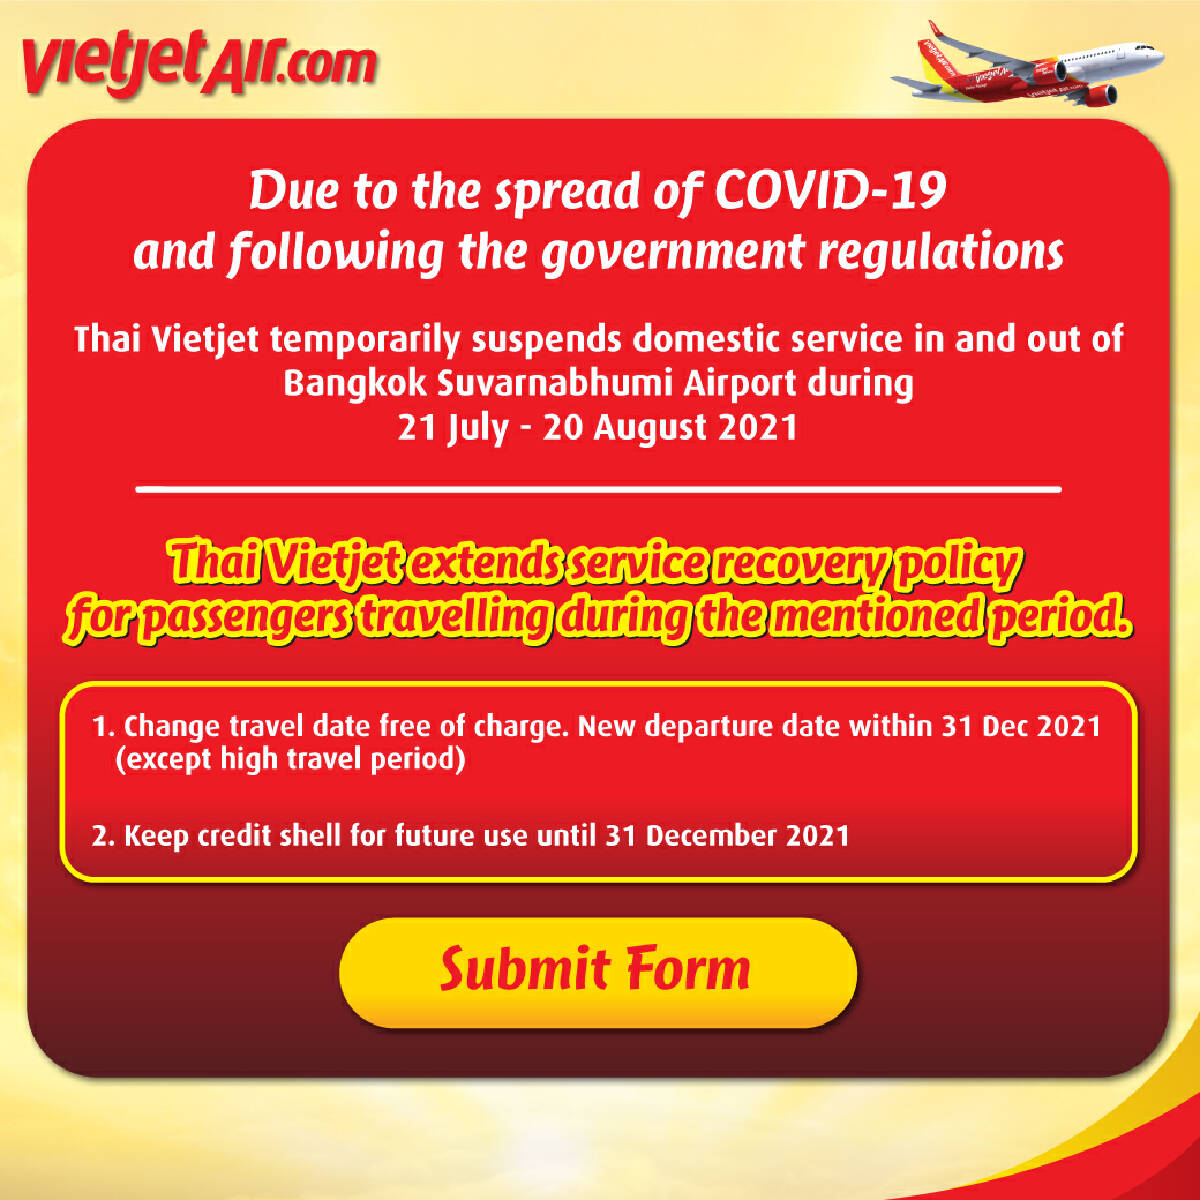 Thai Vietjet extends Support to Passengers during Travel Suspension Period